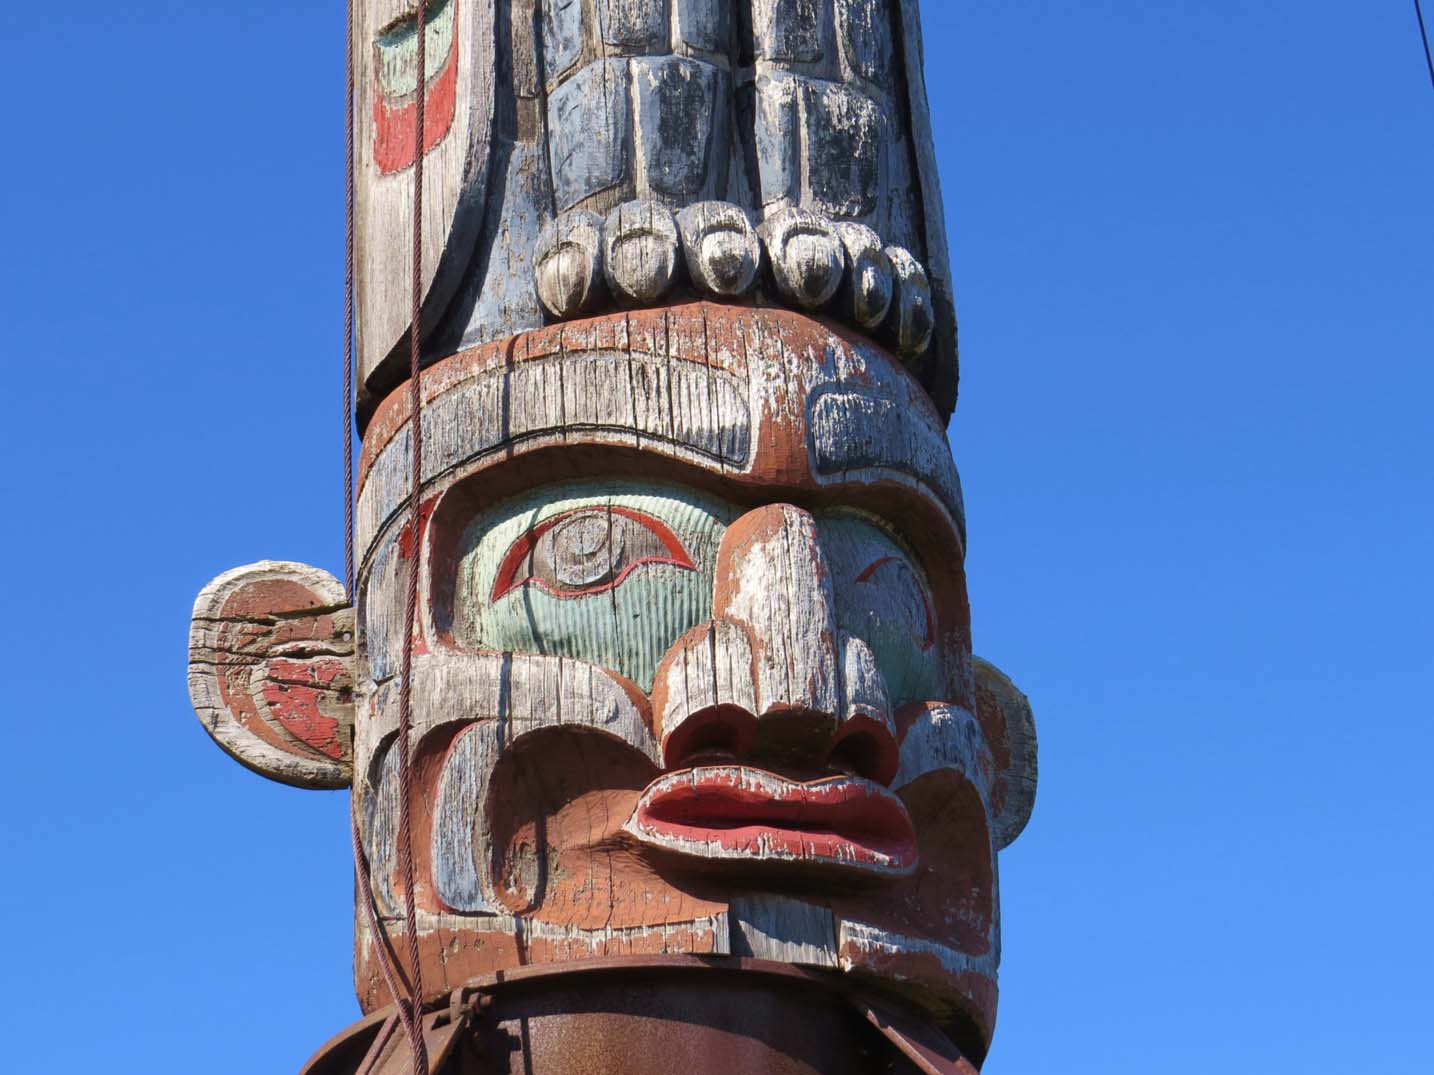 Worlds tallest totem pole Alert Bay